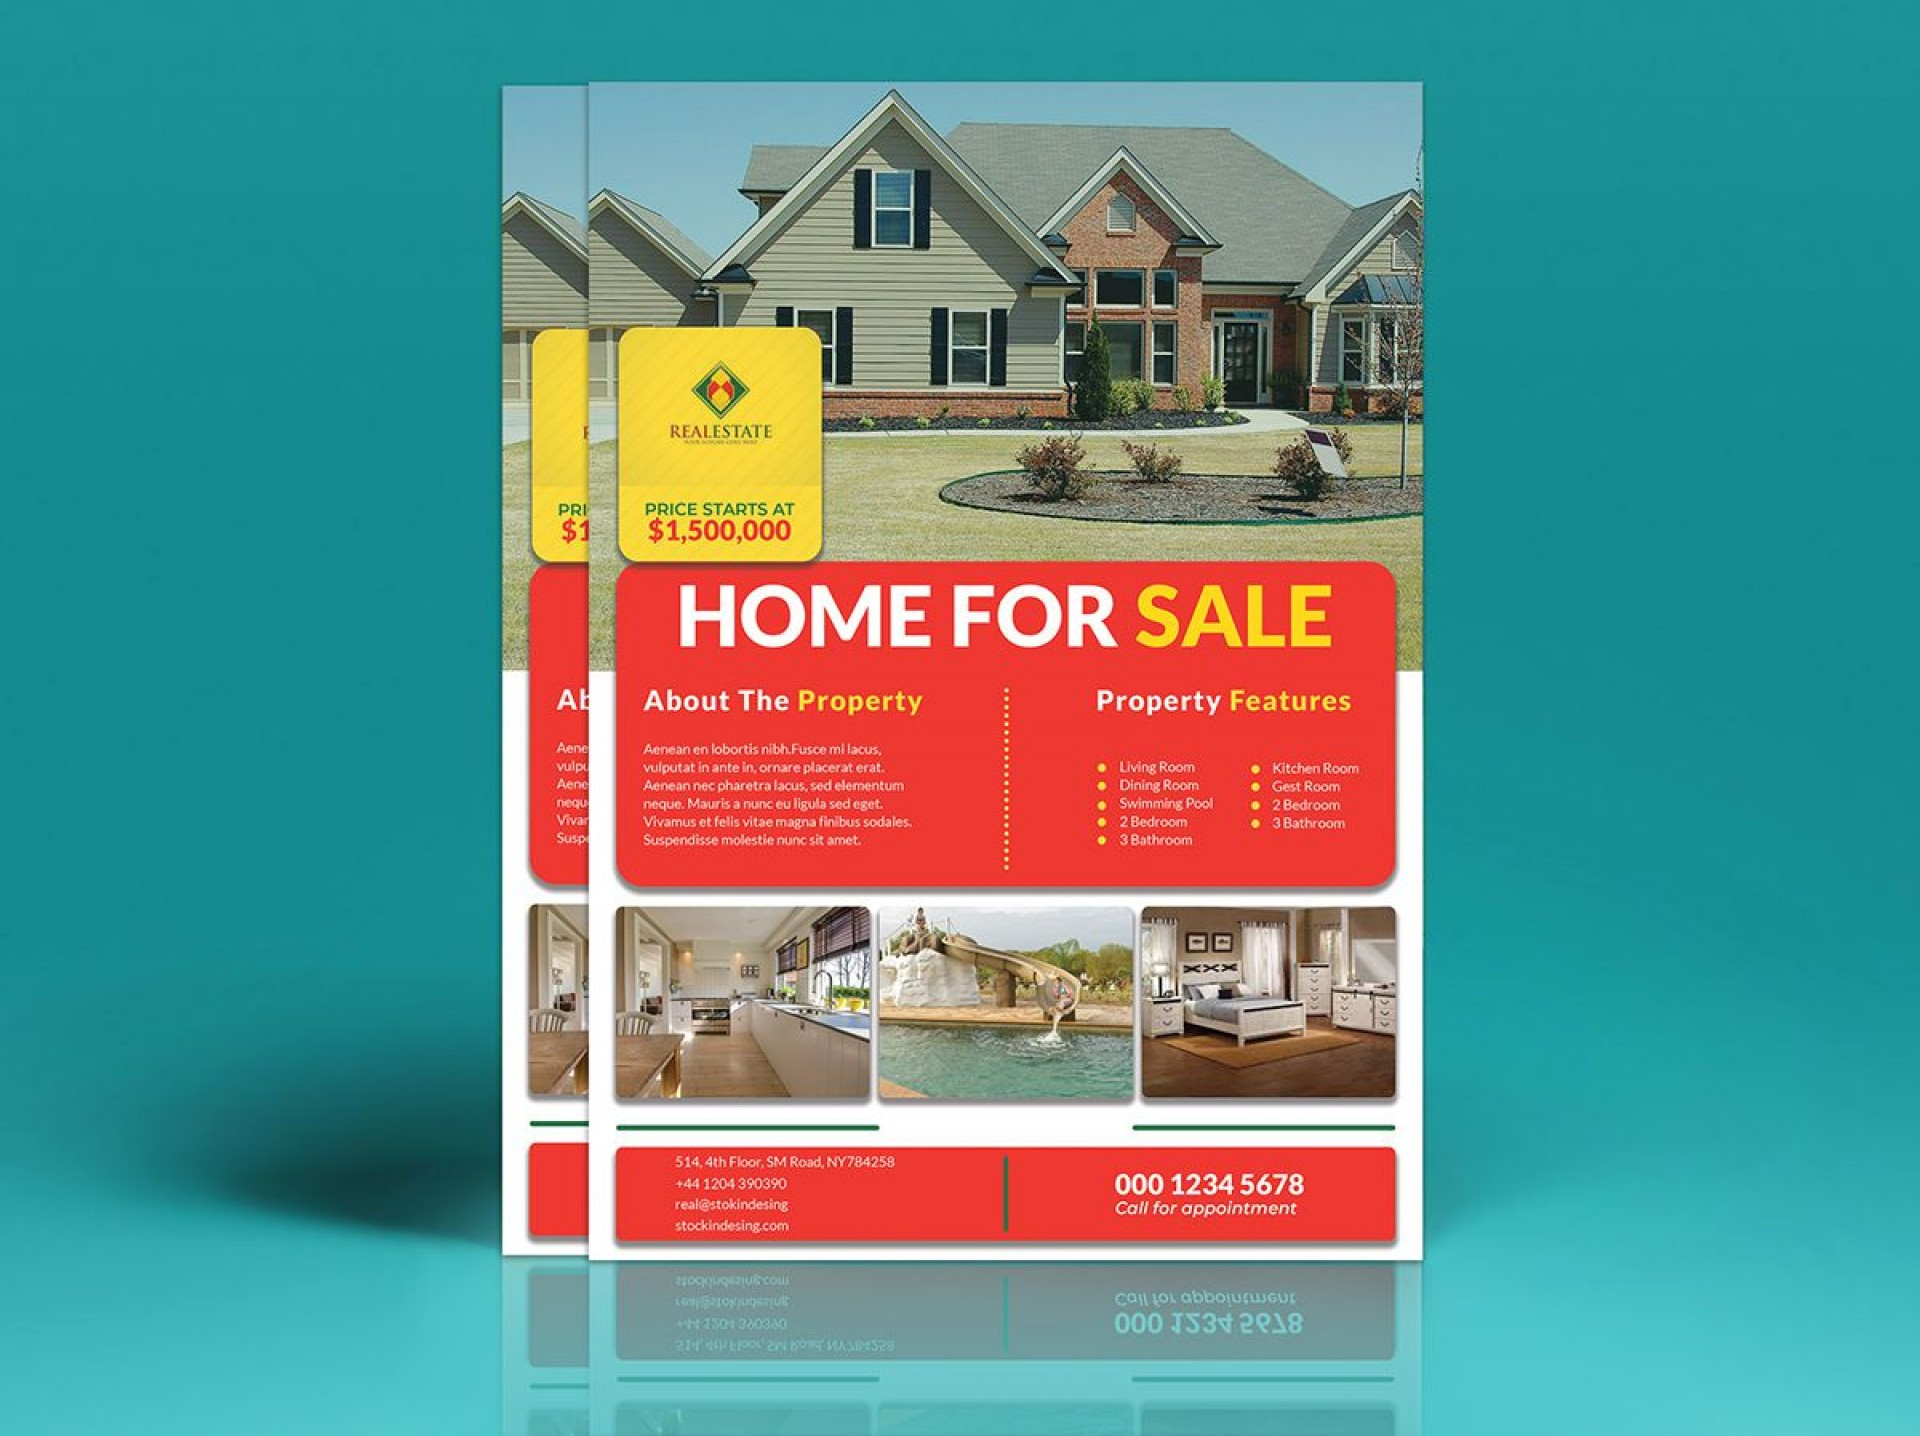 003 Outstanding For Sale Flyer Template Design  Car Ad Microsoft Word House1920